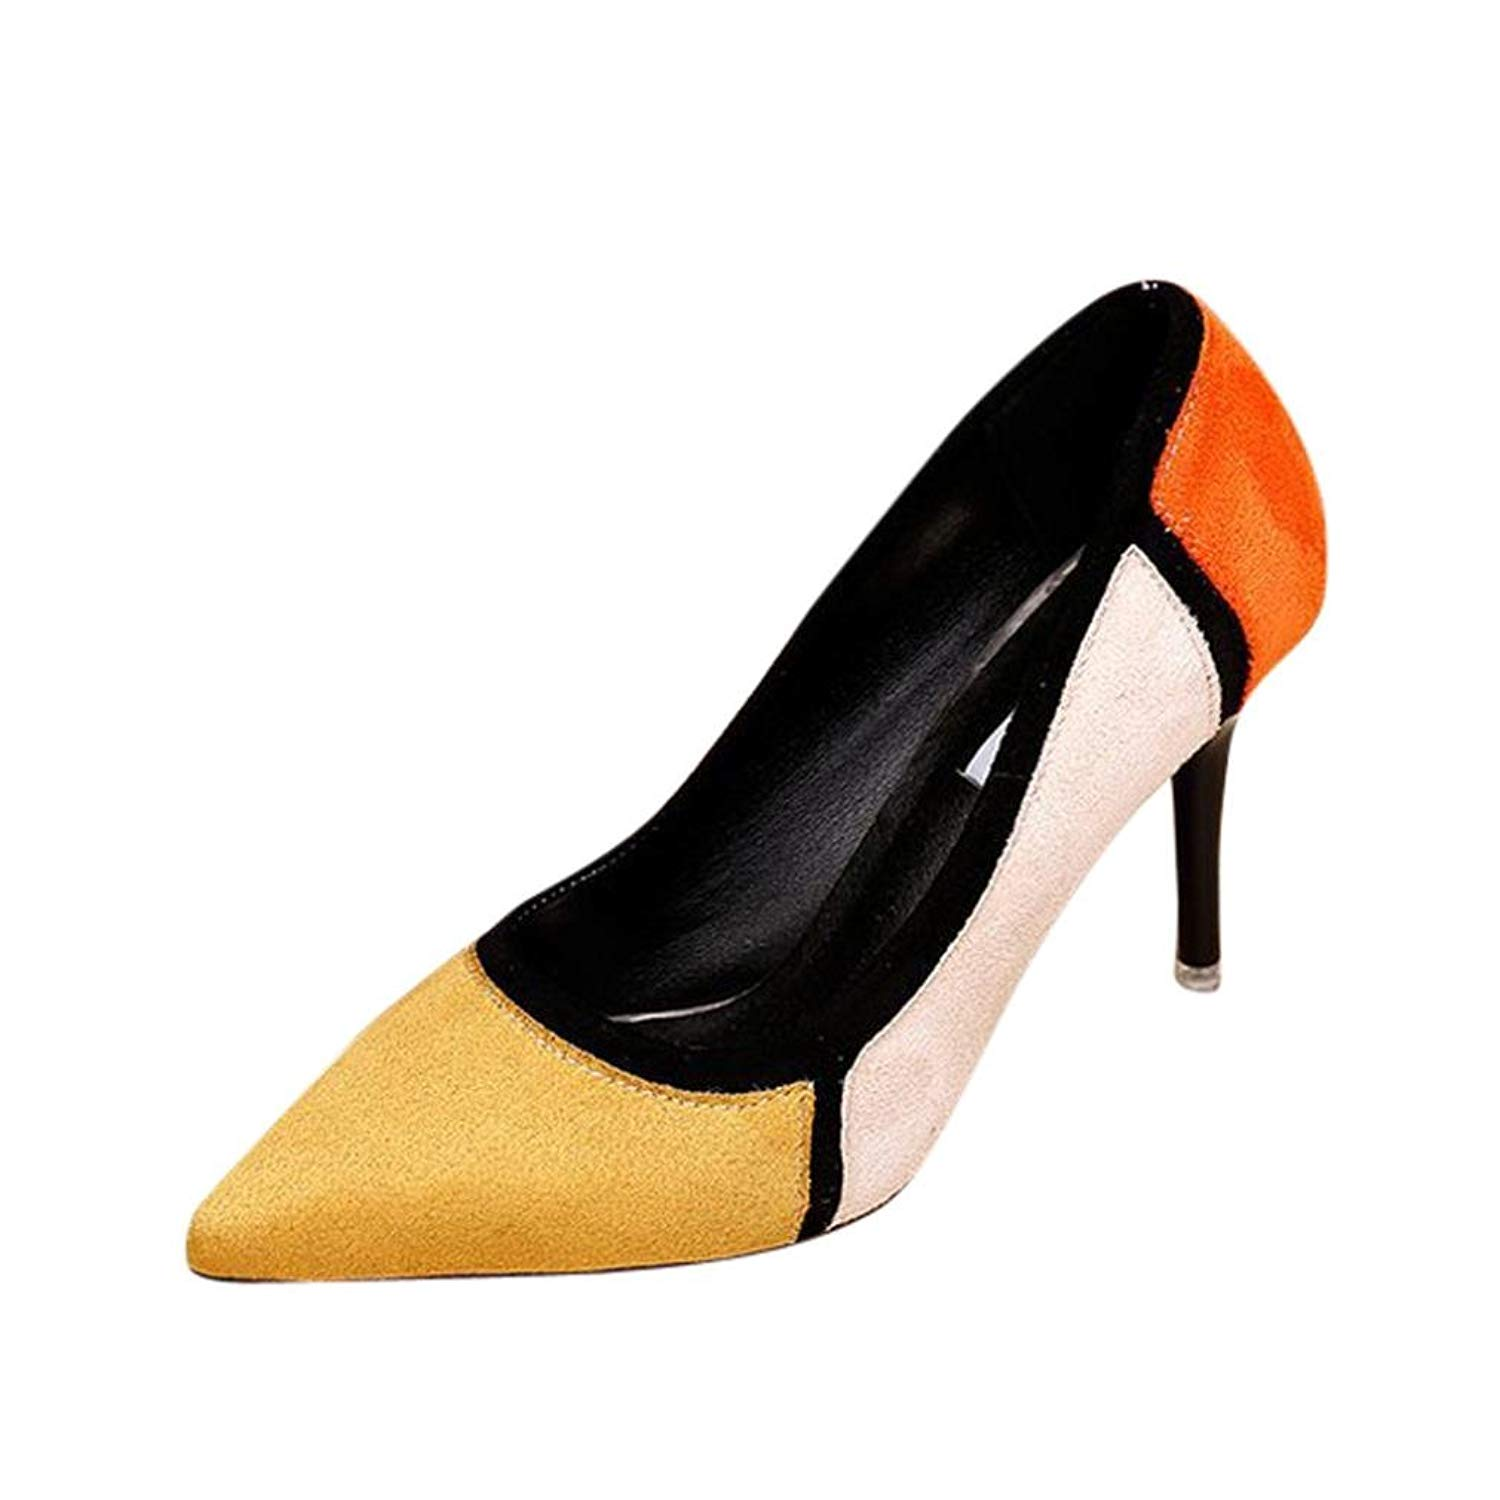 83710416868b Get Quotations · PENATE Women s Fashion Flock Pump Shoes Sexy Thin High Heel  Shallow Pointed Toe Party Wedding Wedge